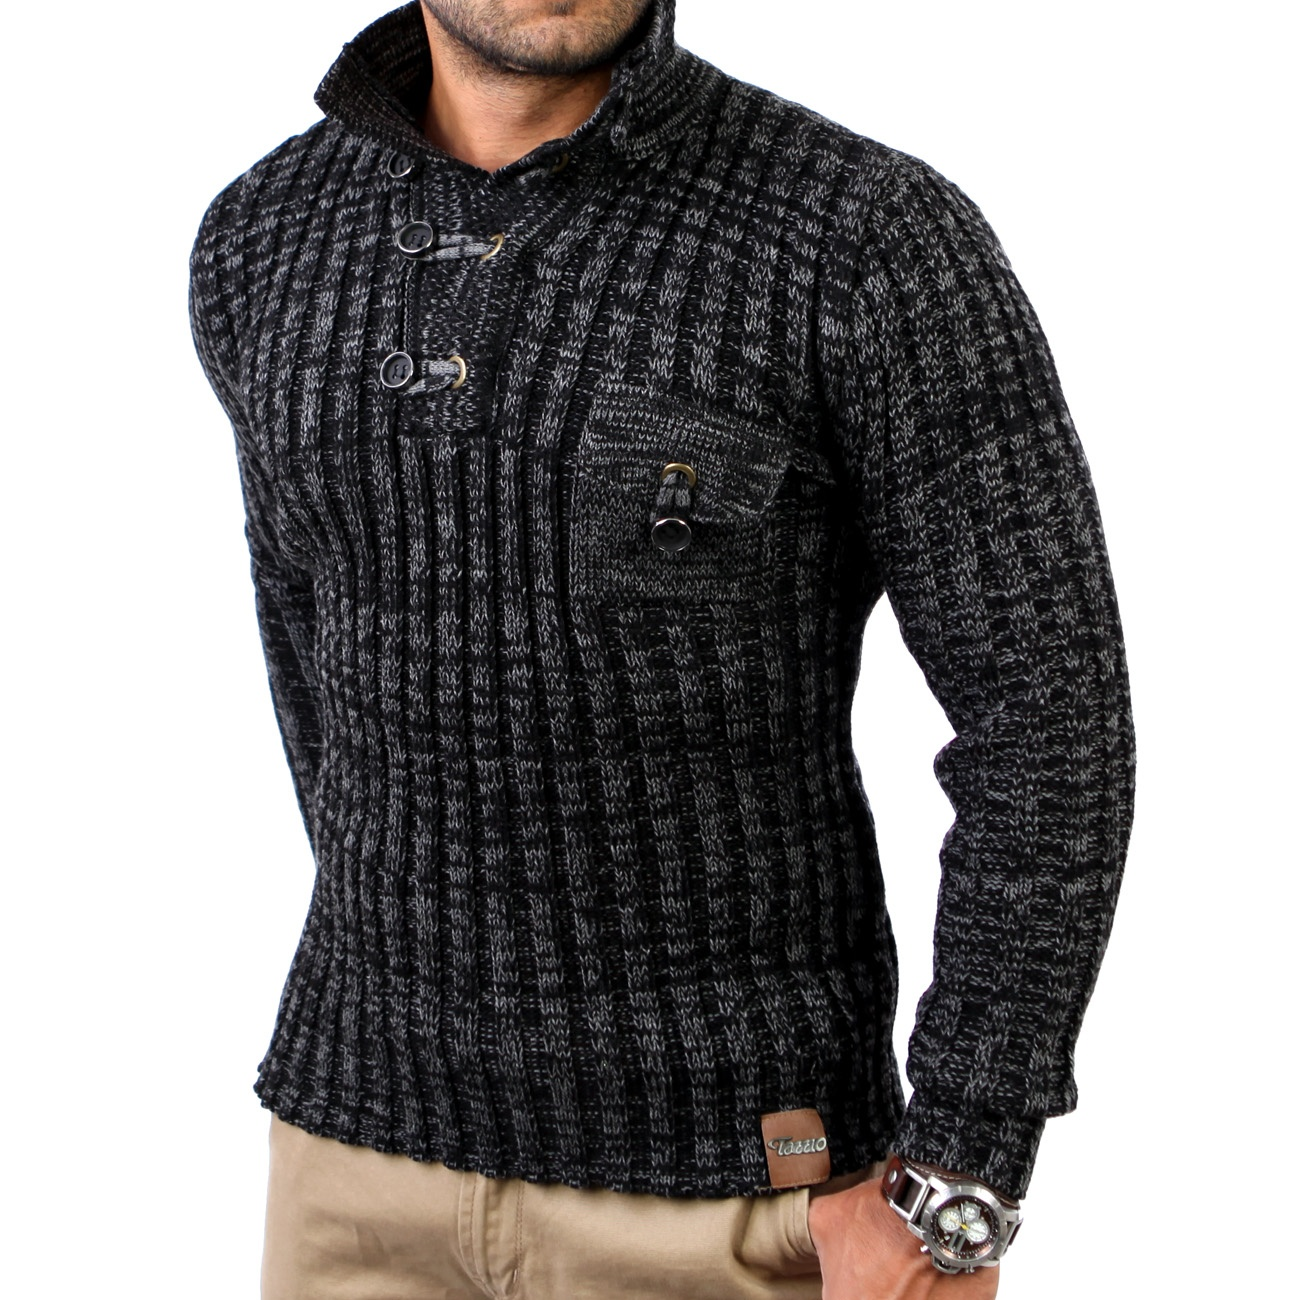 tazzio herren pullover grobstrick pulli sweatshirt strickjacke tz 3560 schwarz ebay. Black Bedroom Furniture Sets. Home Design Ideas